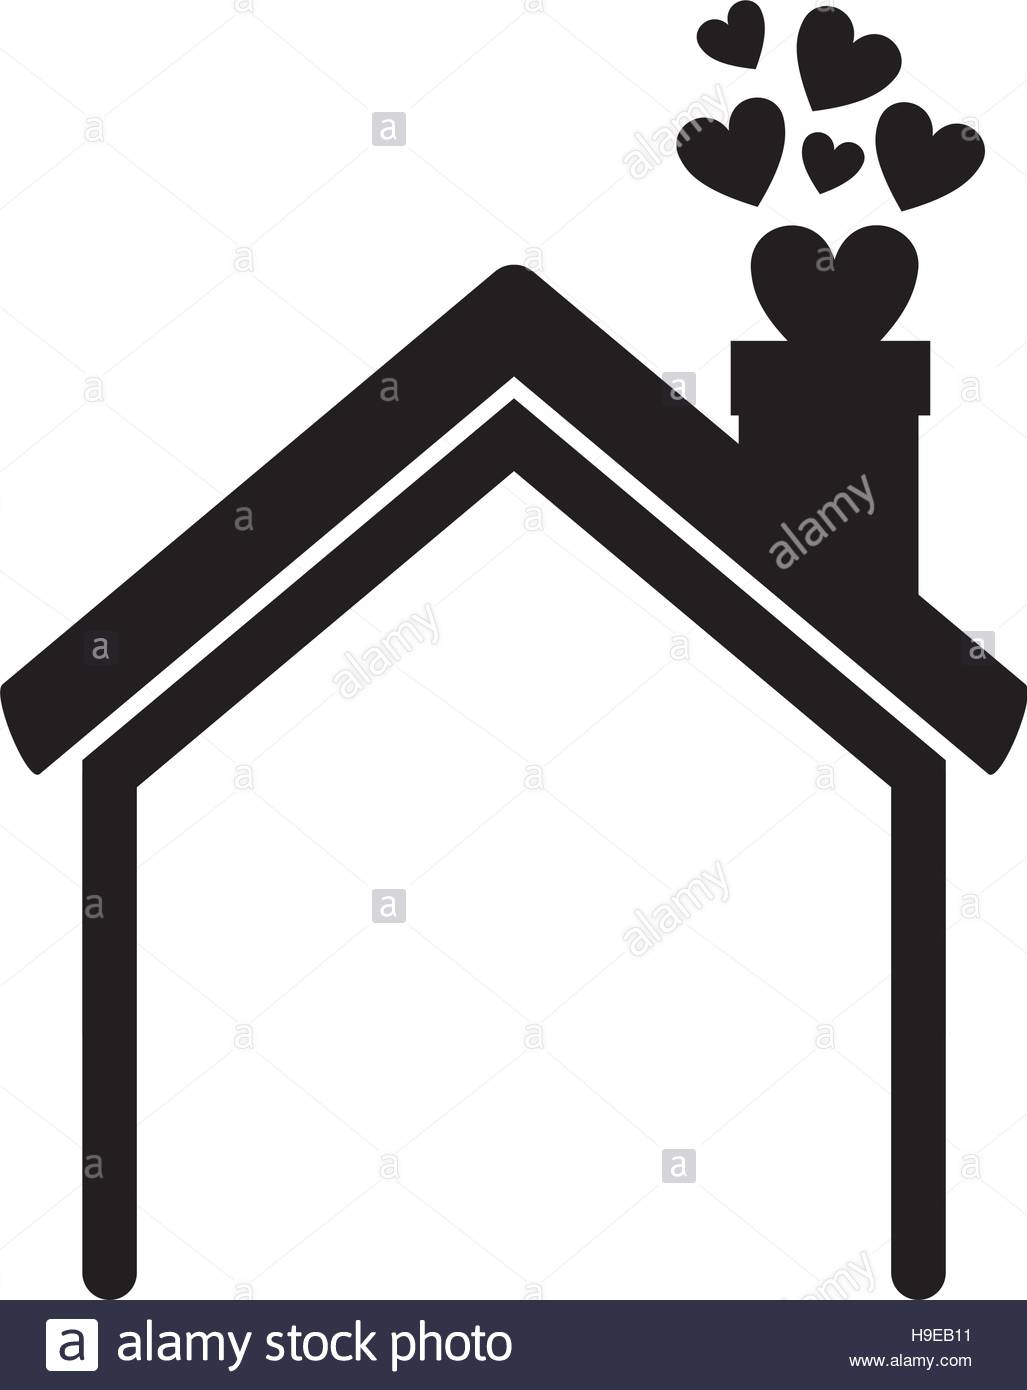 1027x1390 Black Silhouette House With Chimney And Hearts Vector Illustration